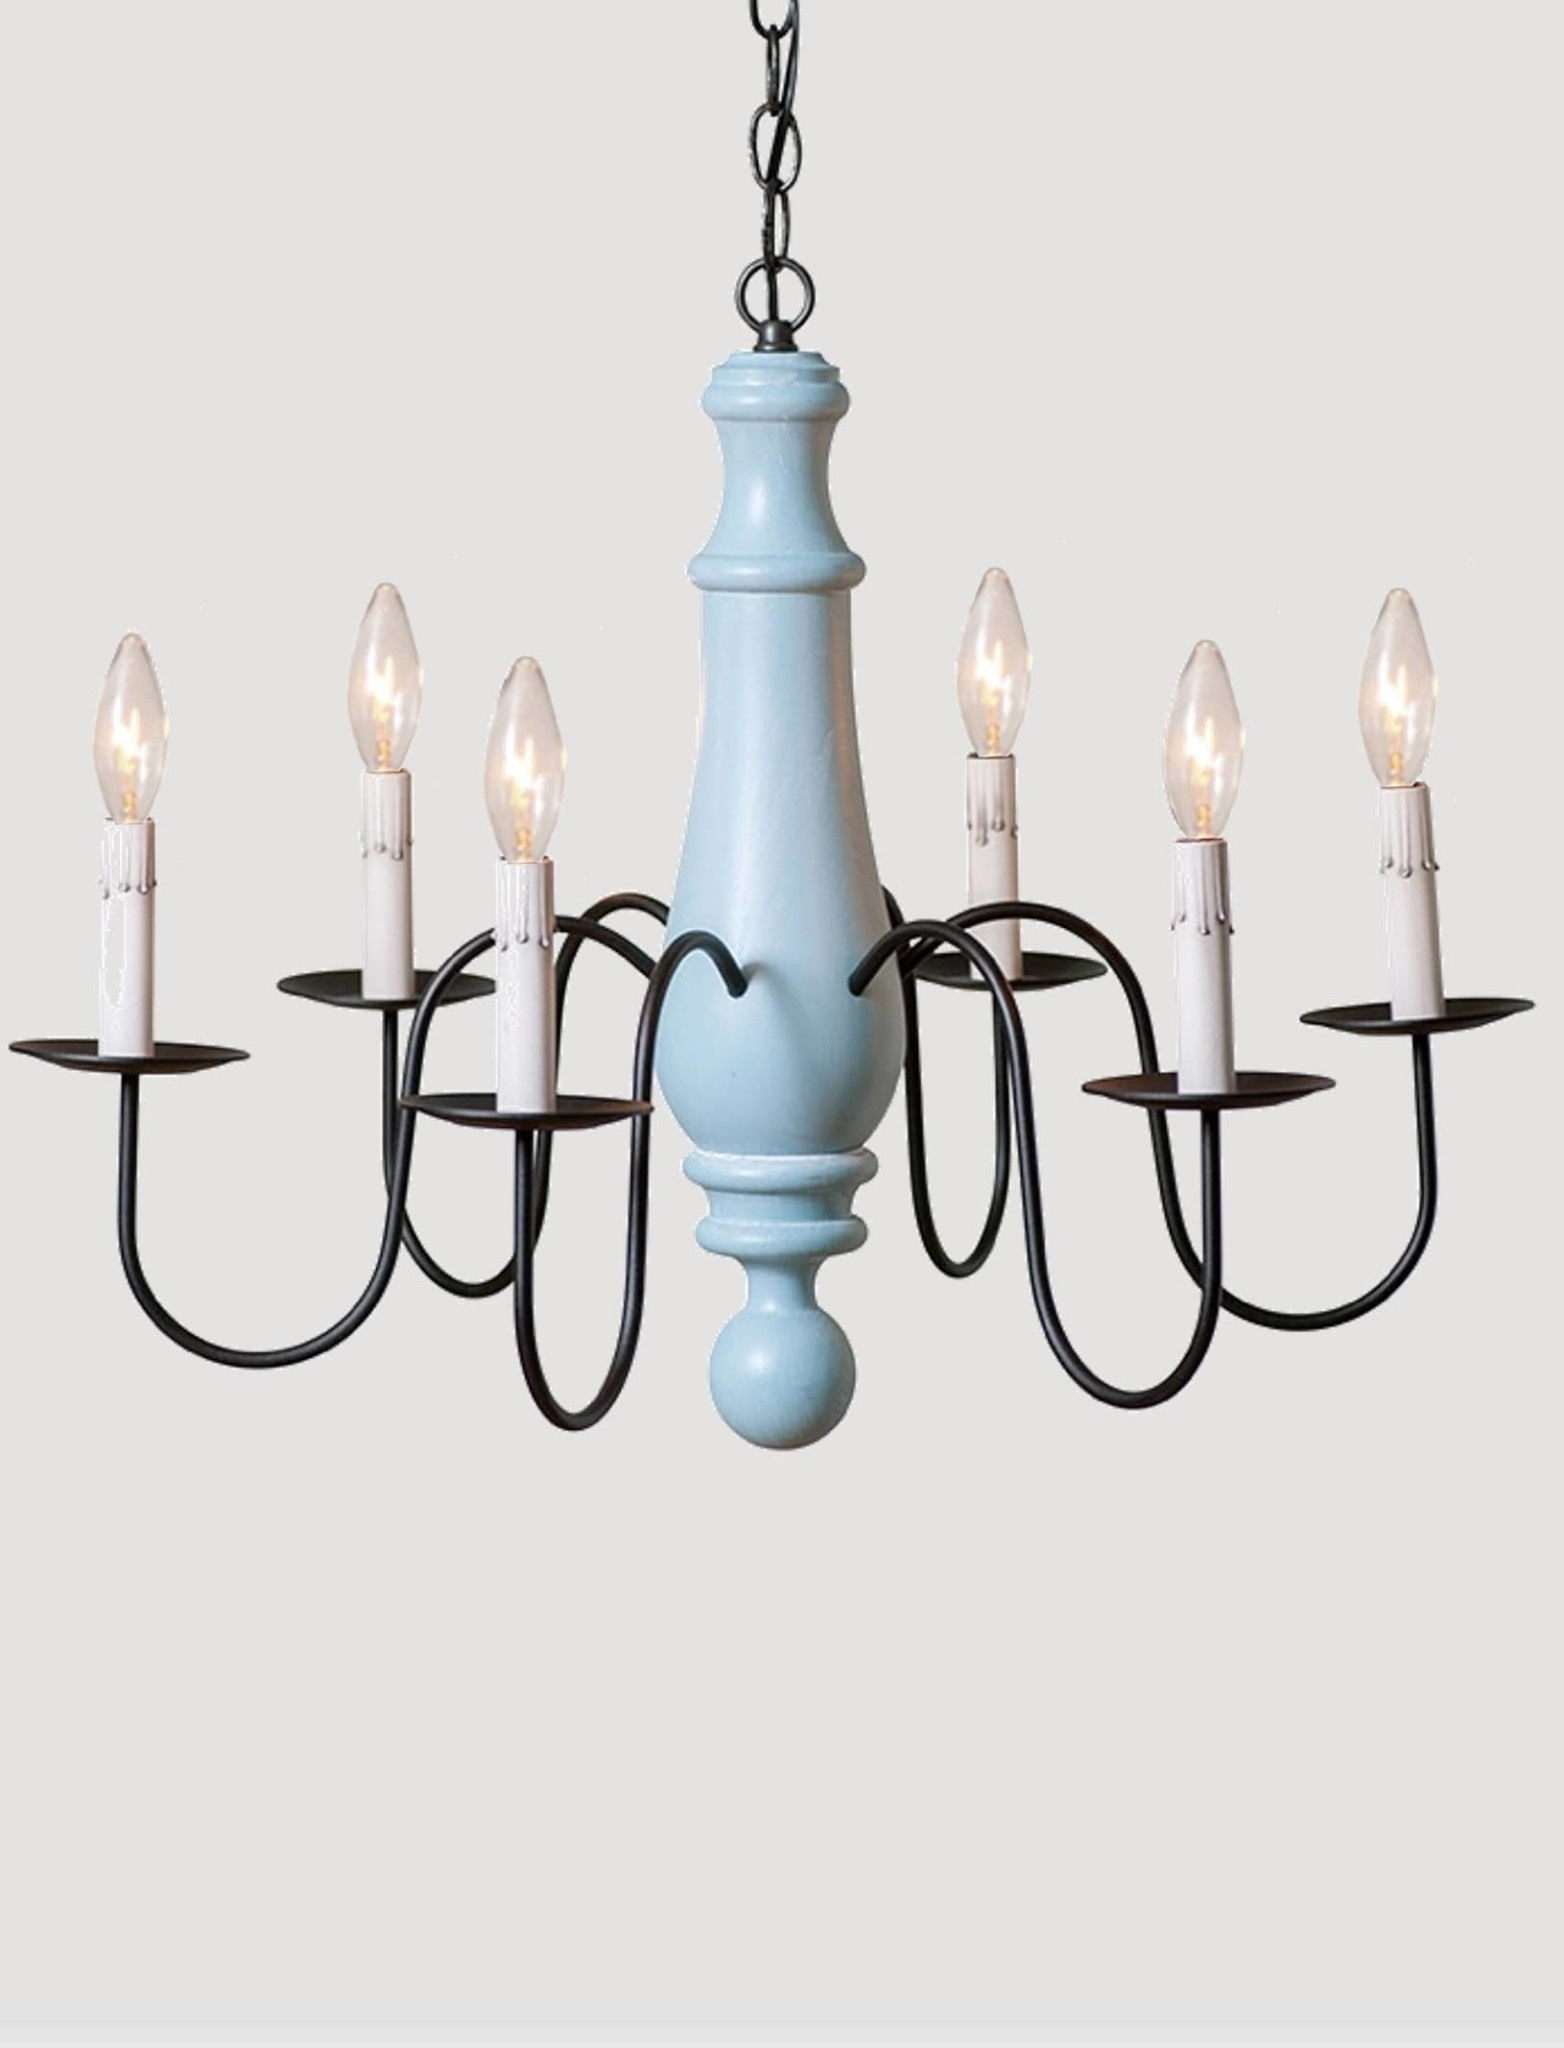 Irvin's Tinware Large Norfolk Chandelier 6 Light